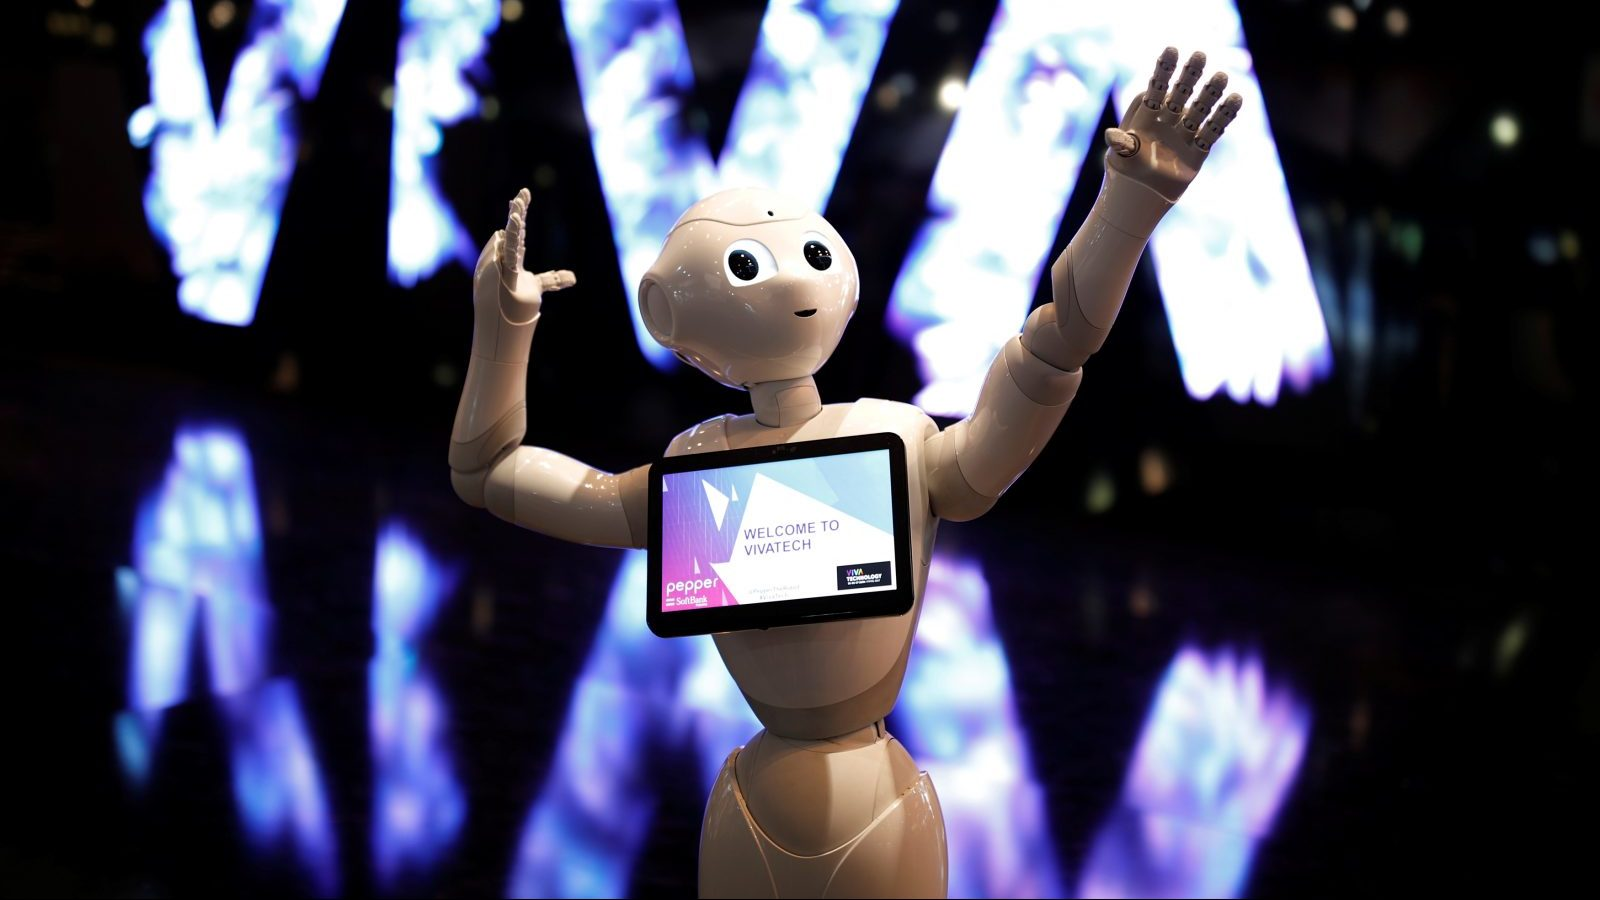 A 'Pepper' humanoid robot, manufactured by SoftBank Group Corp., stands at the Viva Technology conference in Paris, France, June 15, 2017. REUTERS/Benoit Tessier - RC1B69F0EBC0